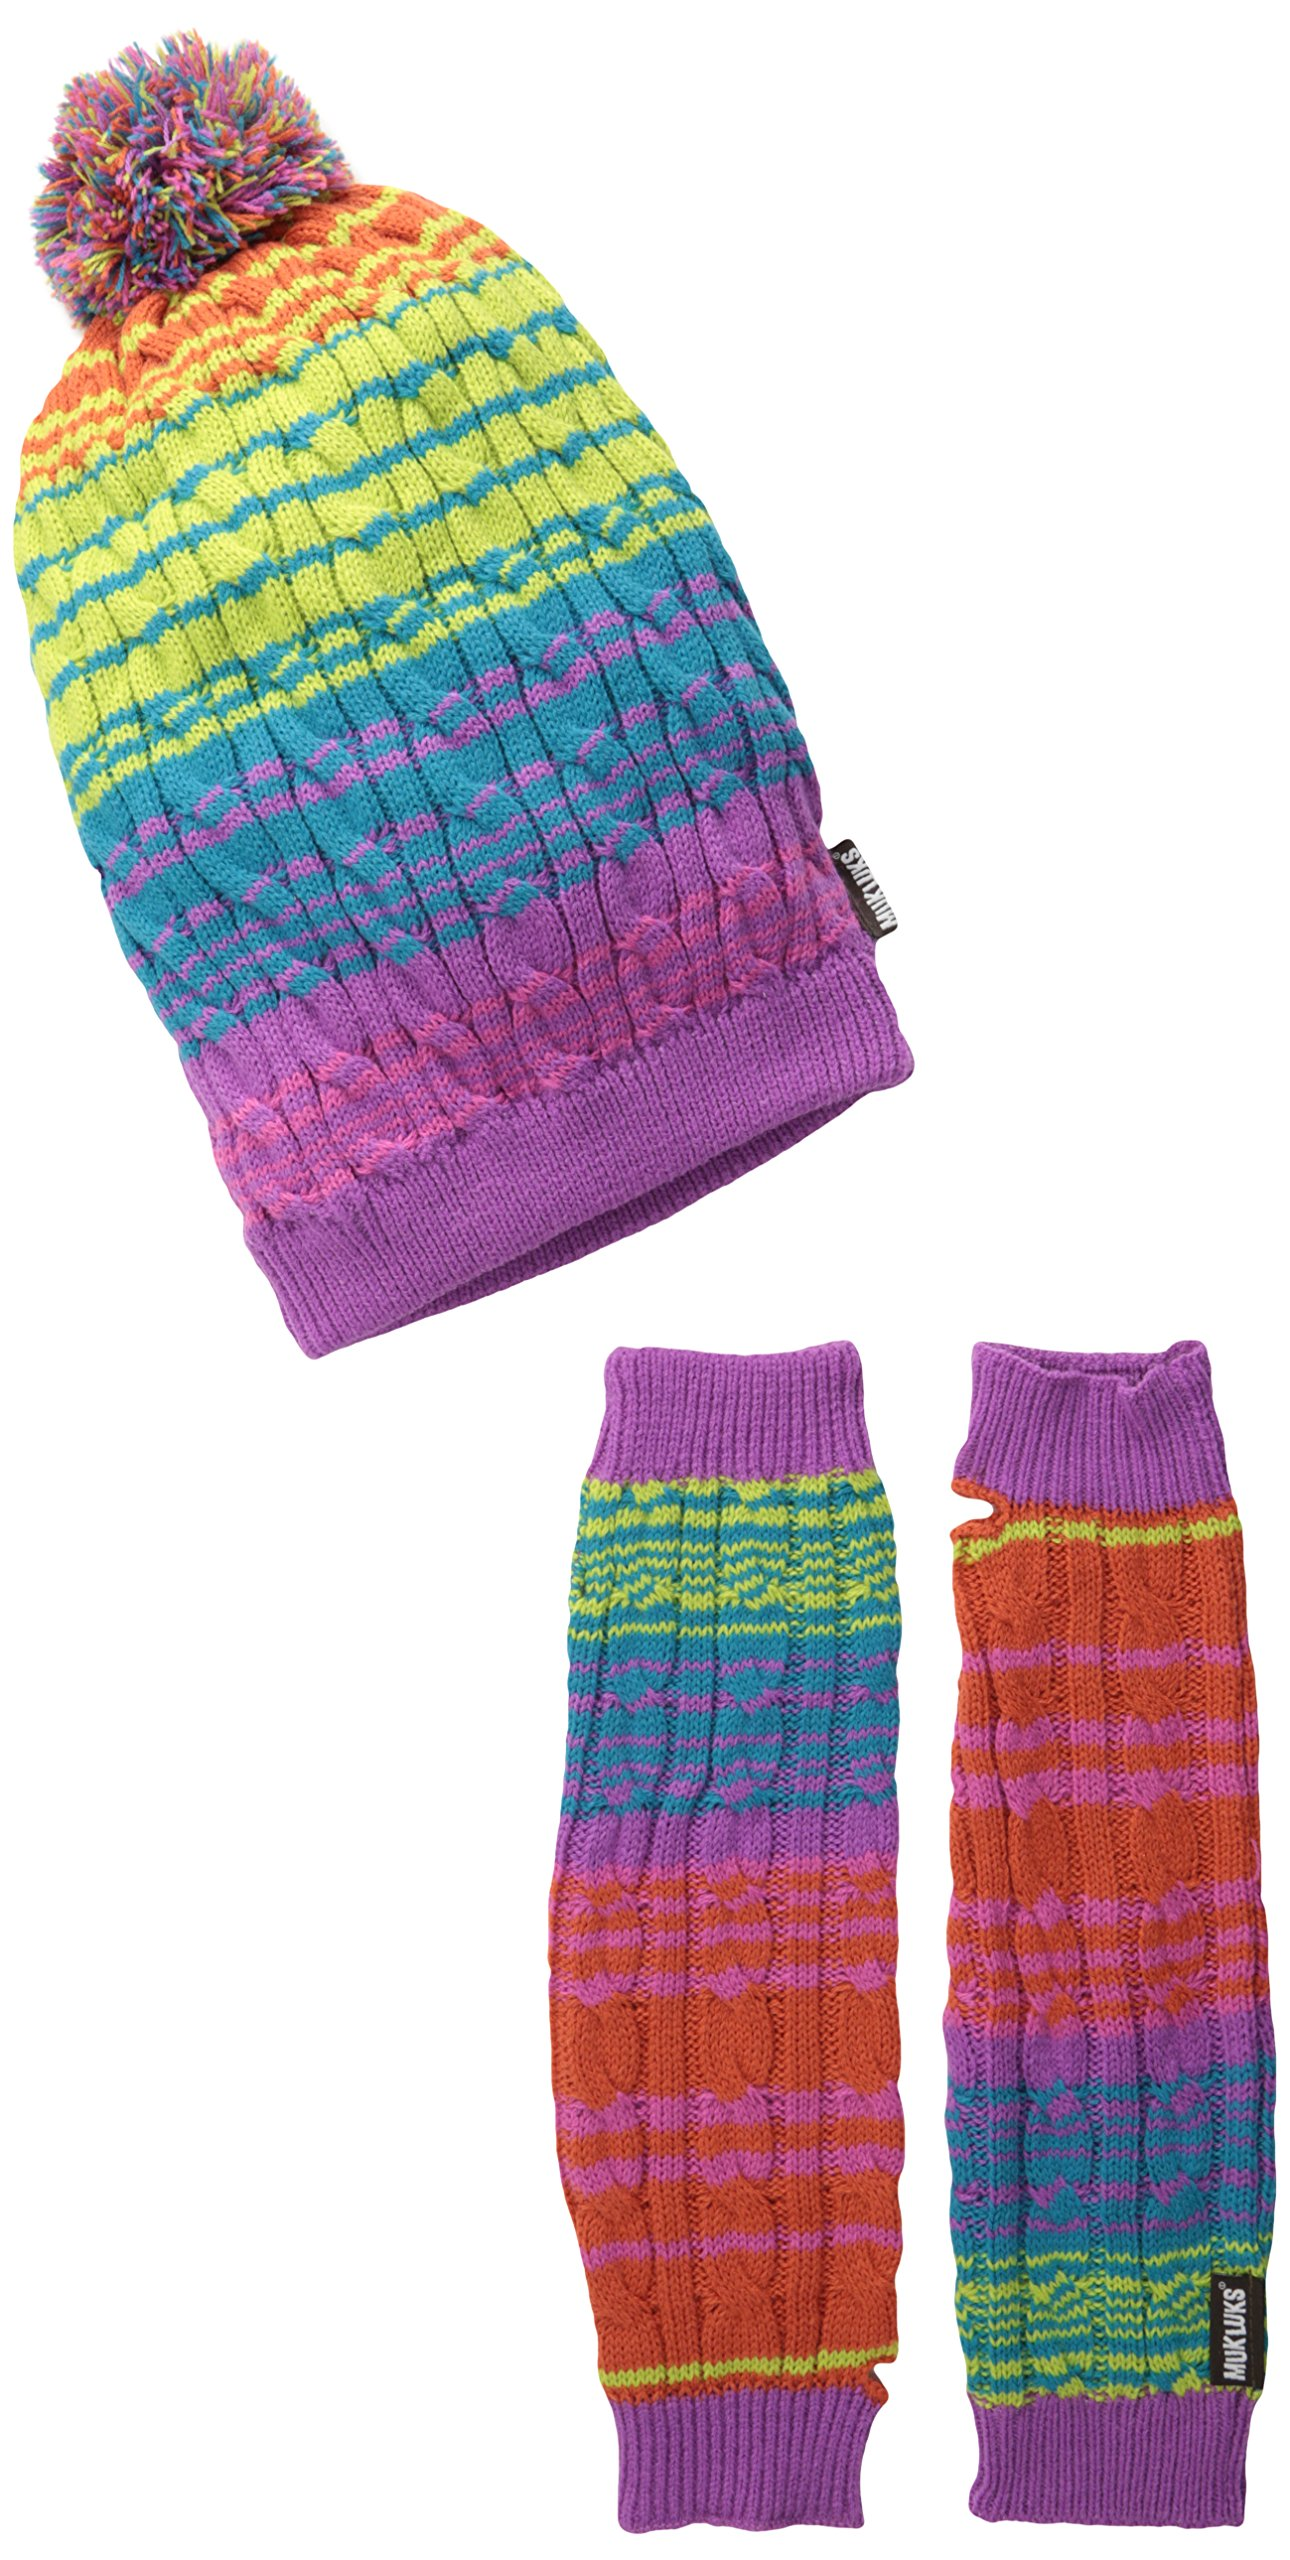 Muk Luks Women's Candy Coated Beanie and Armwarmer Set, Multi, One Size